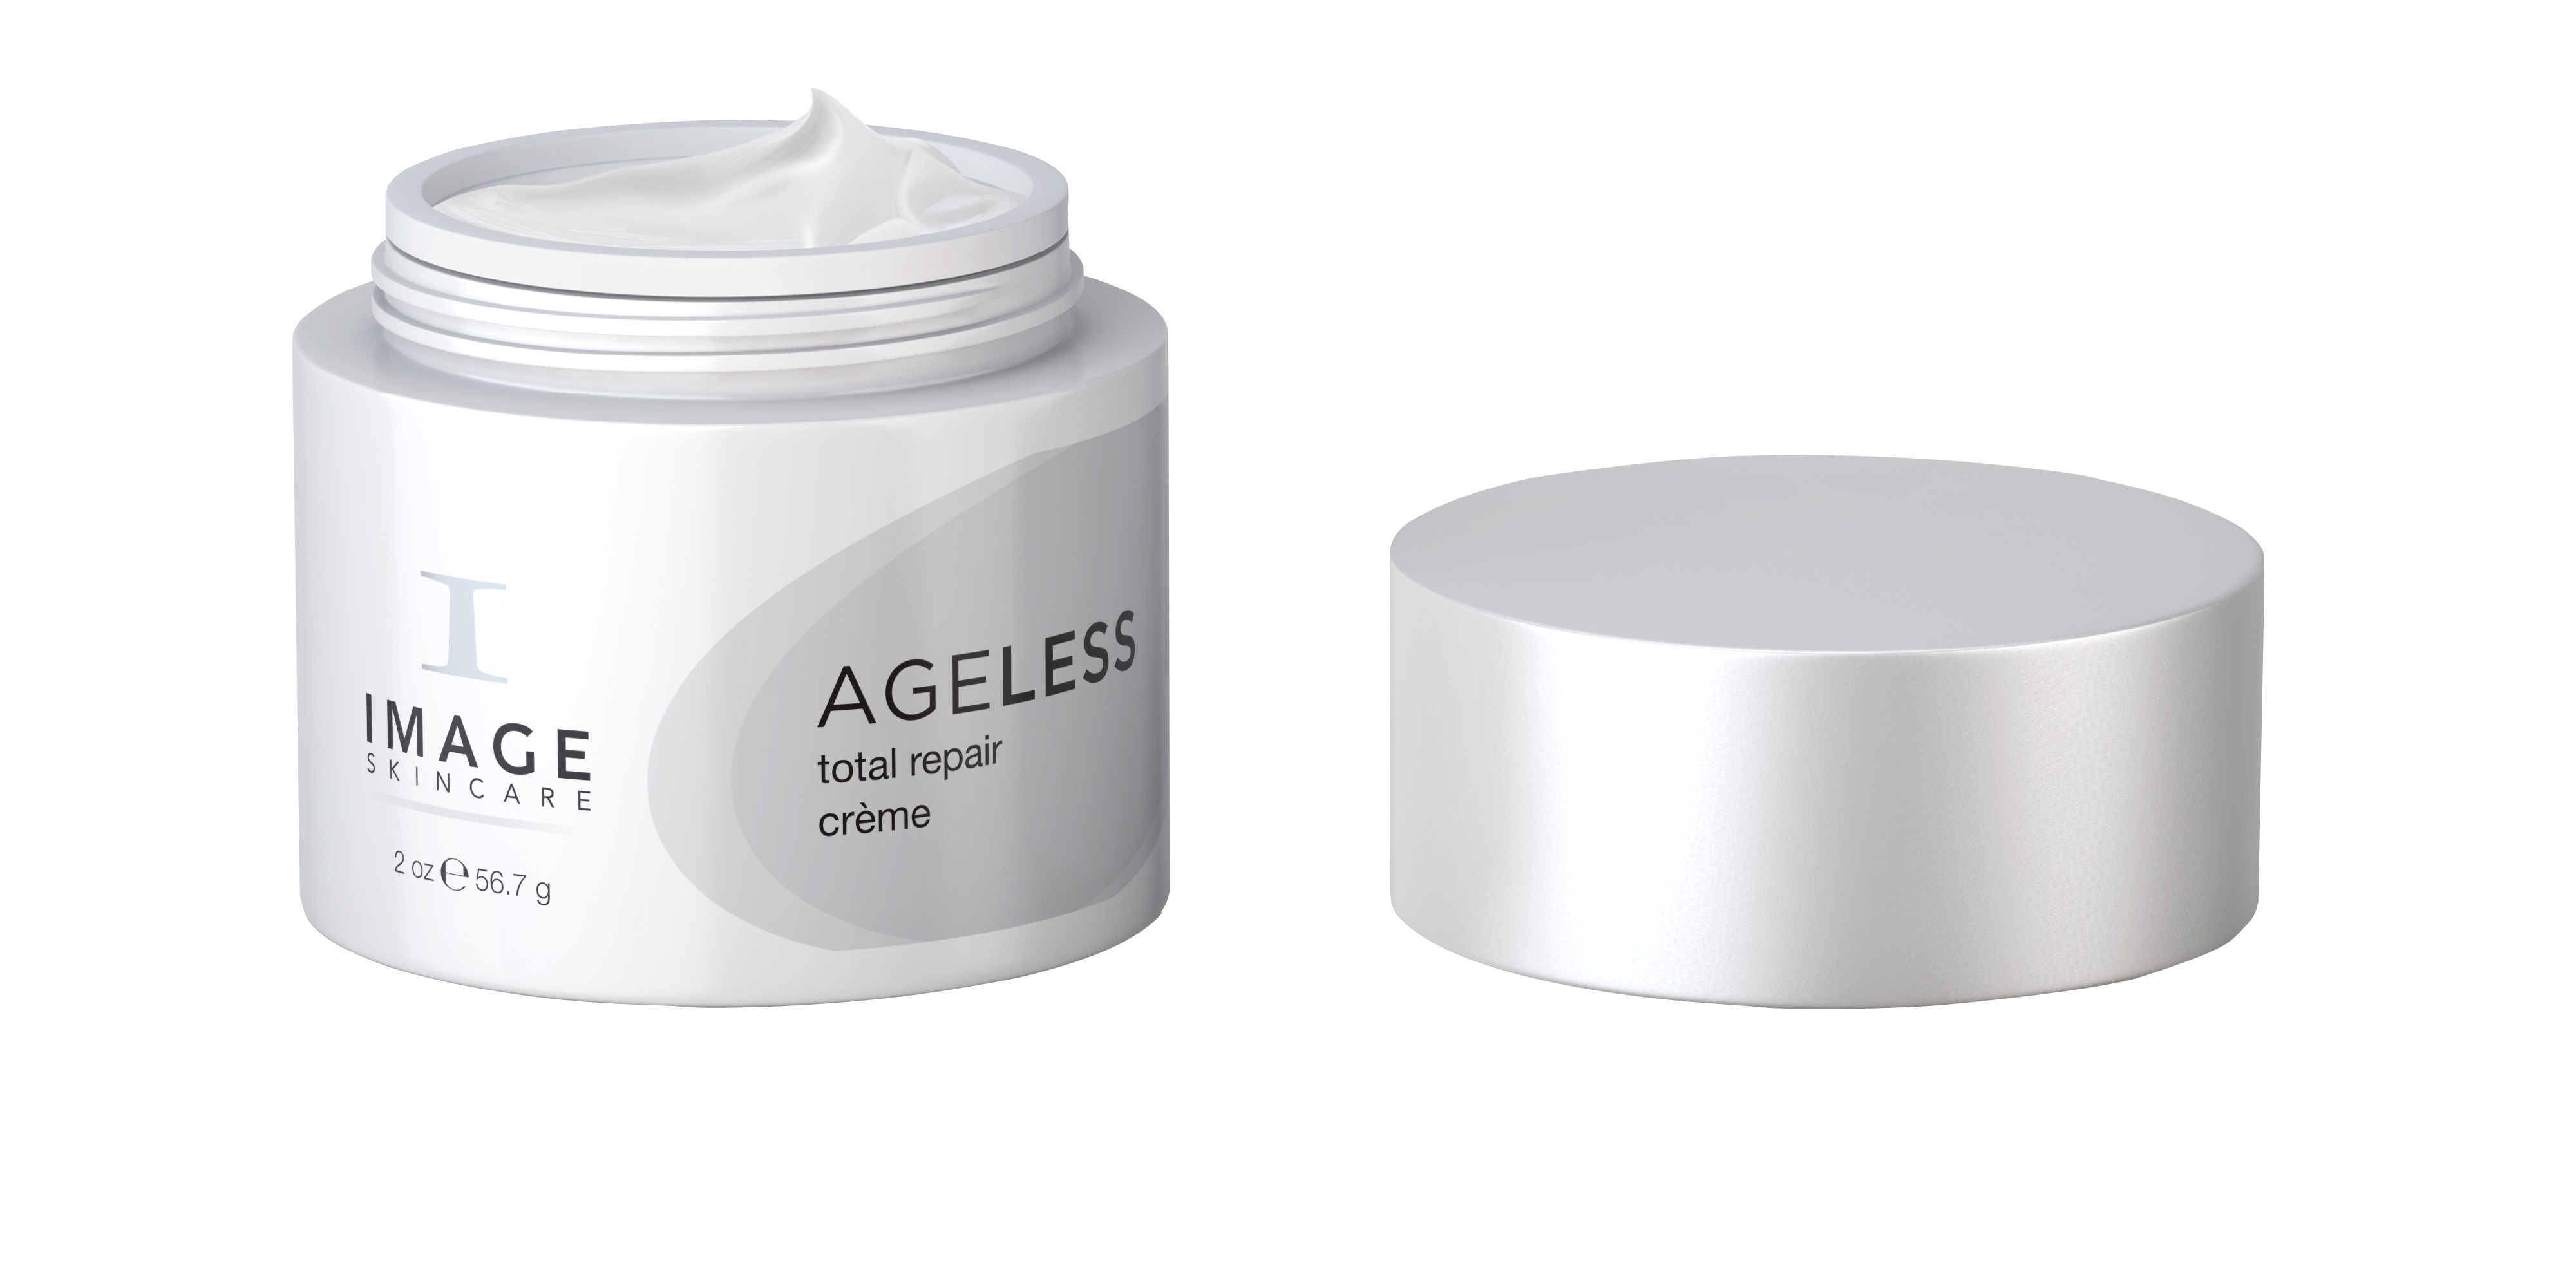 Image Ageless Total Repair Creme The Temple Skincare Spa